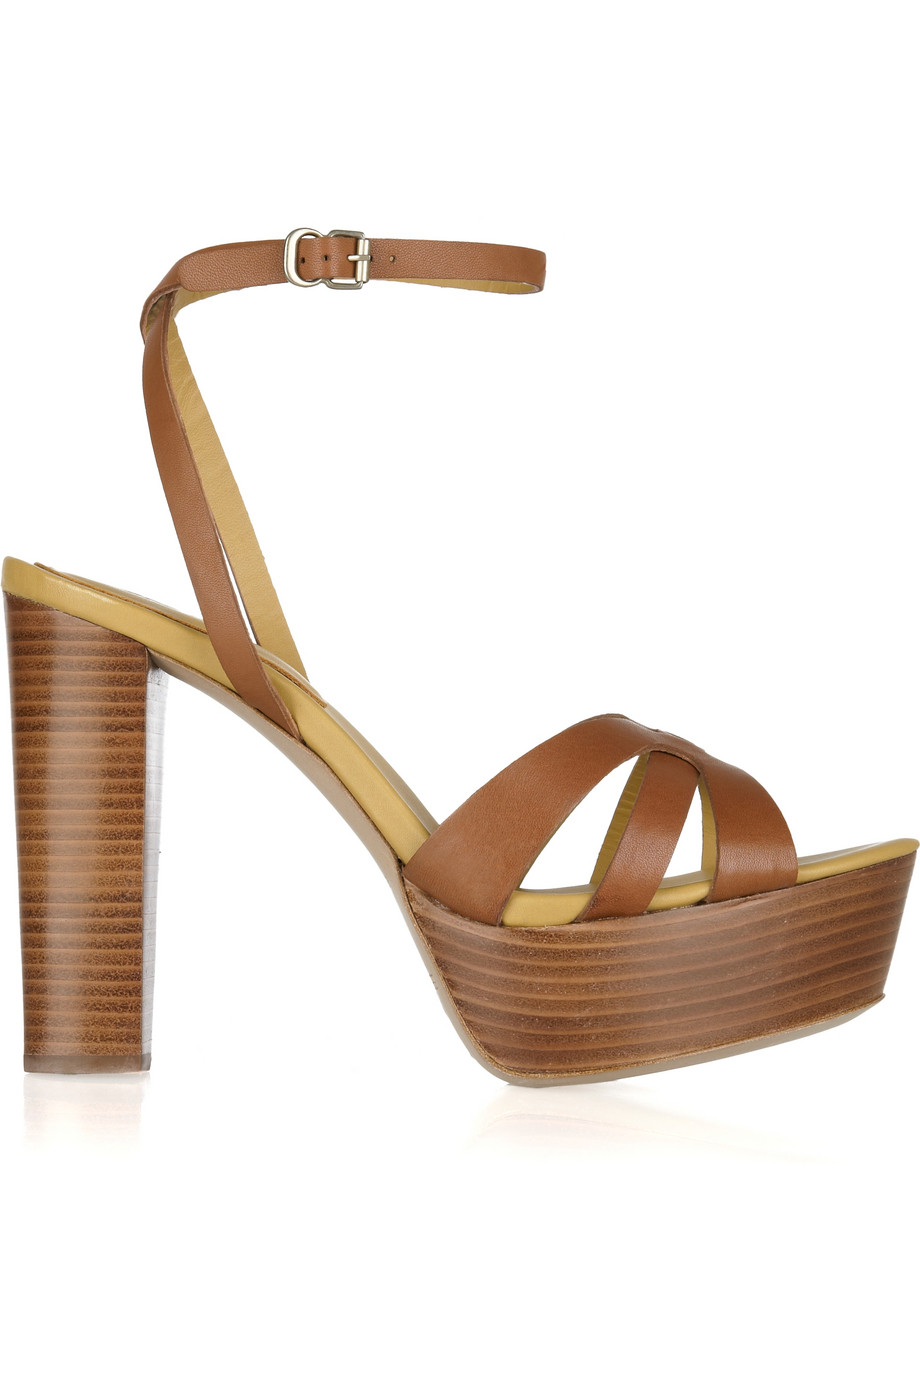 5e454476d94b Lyst - See By Chloé Wooden-heeled Leather Sandals in Brown